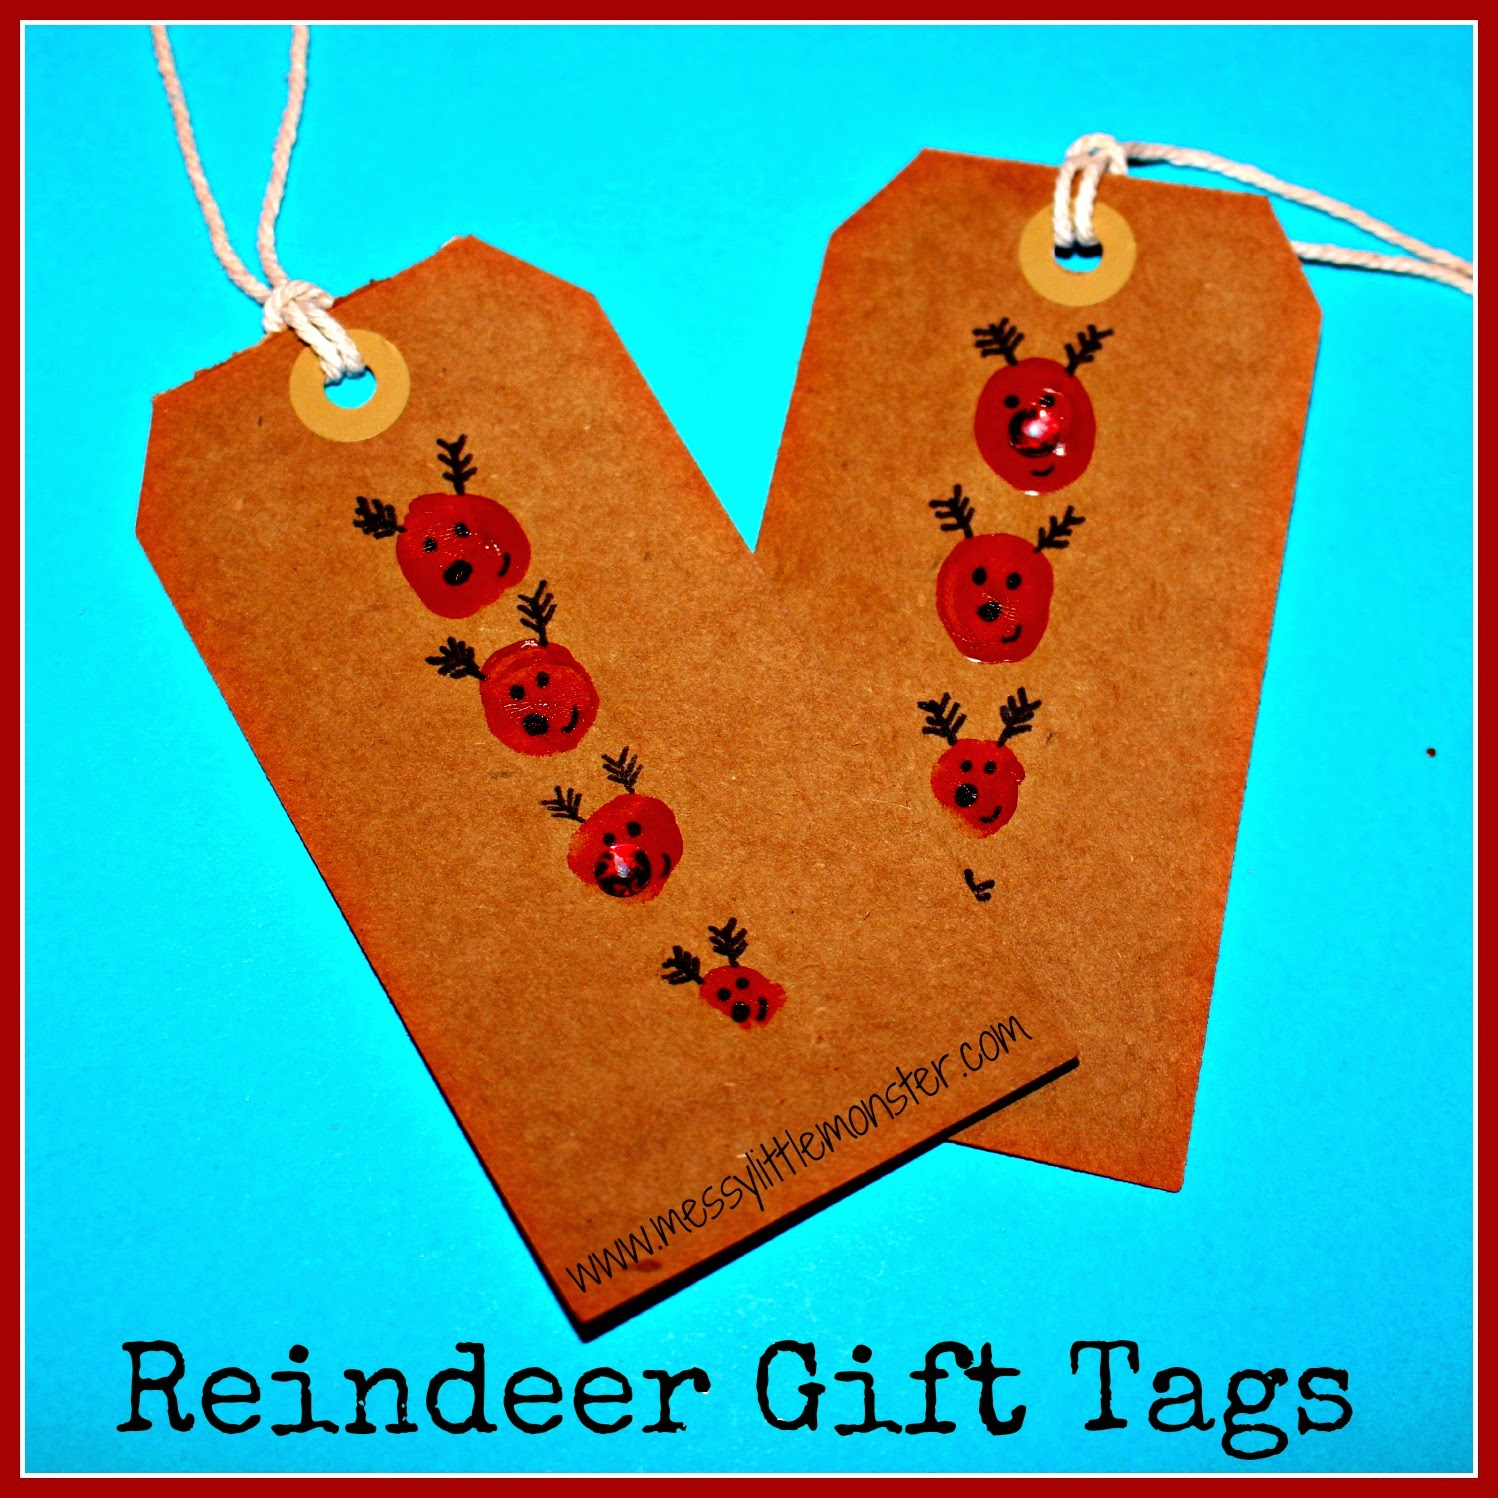 Reindeer fingerprint gift tags.  Simple Christmas craft activity for toddlers, preschoolers and older kids.